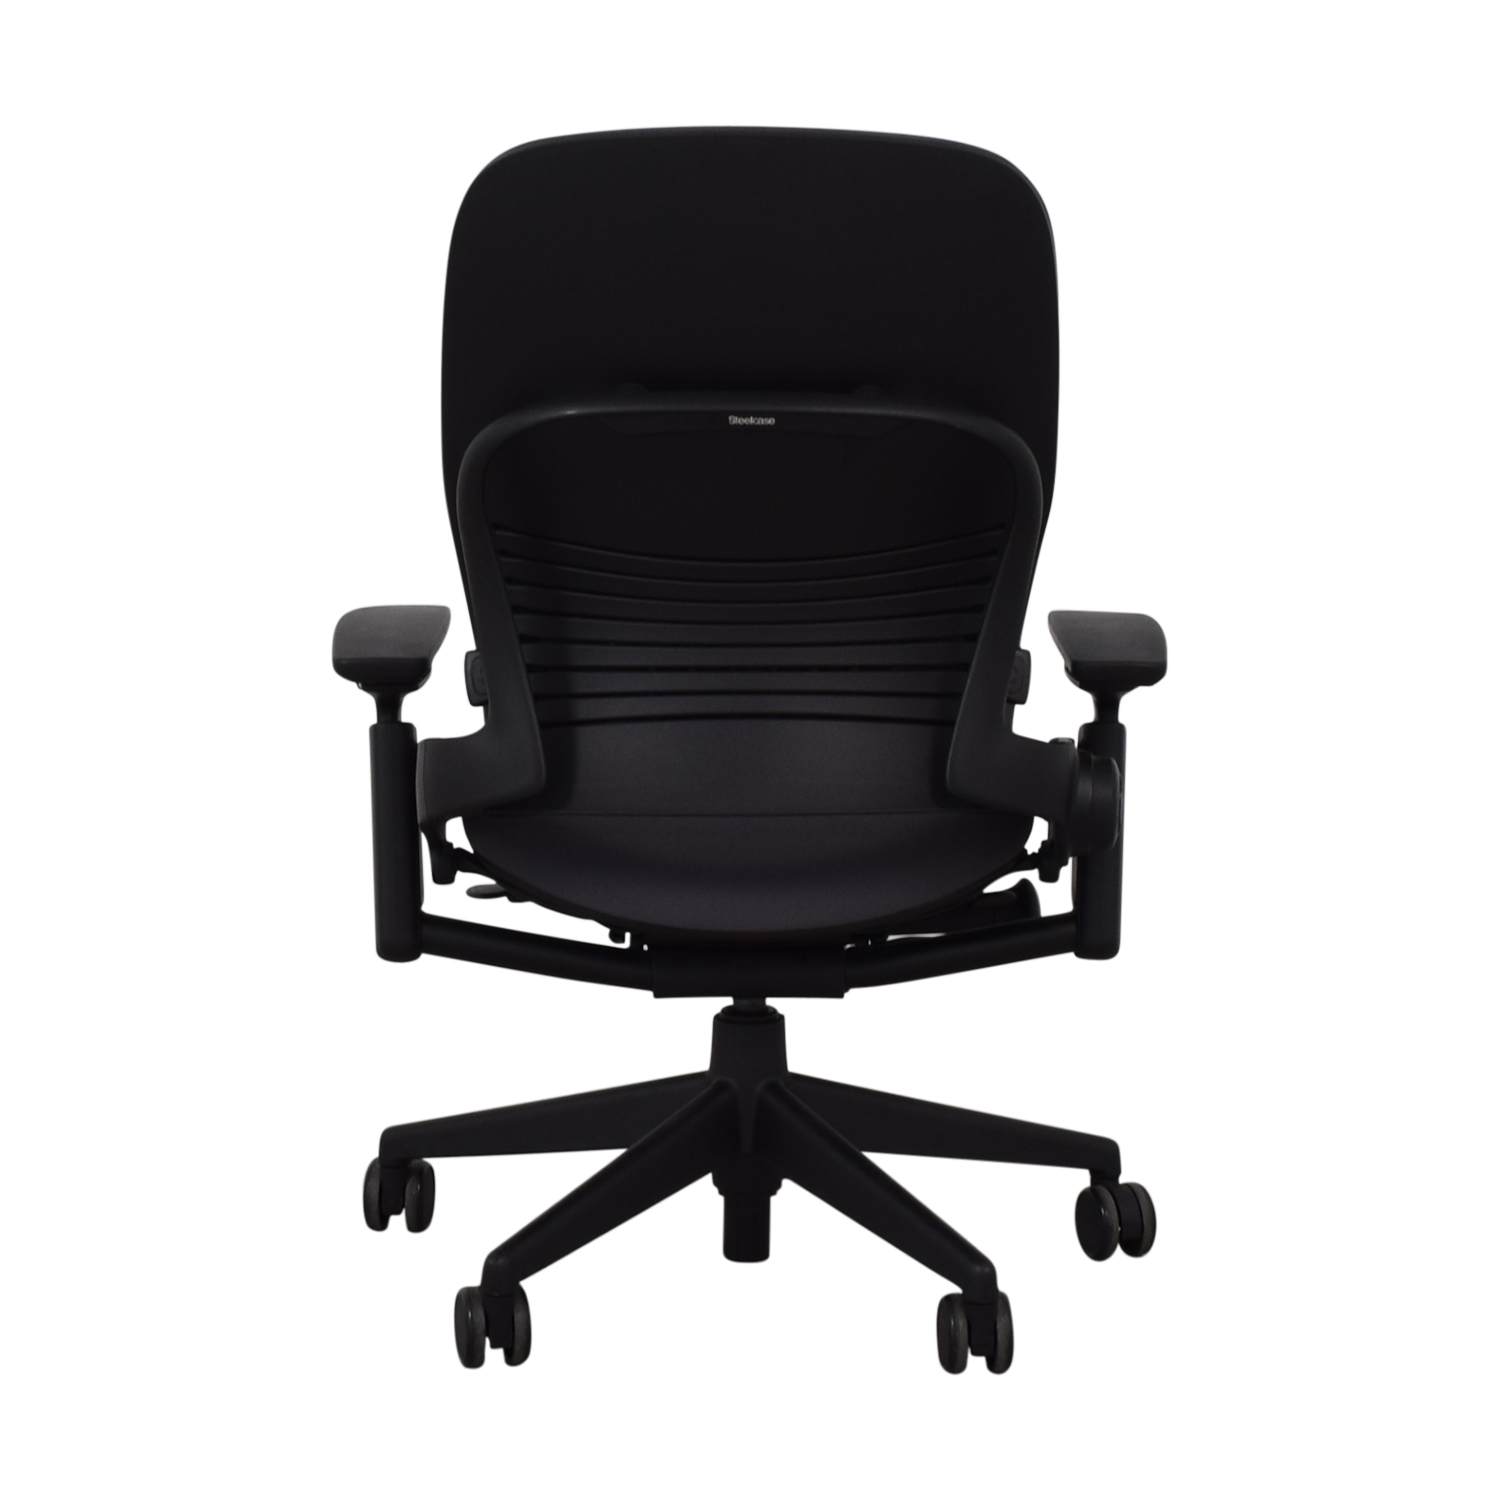 buy Steelcase Steelcase Leap V2 Office Chair online